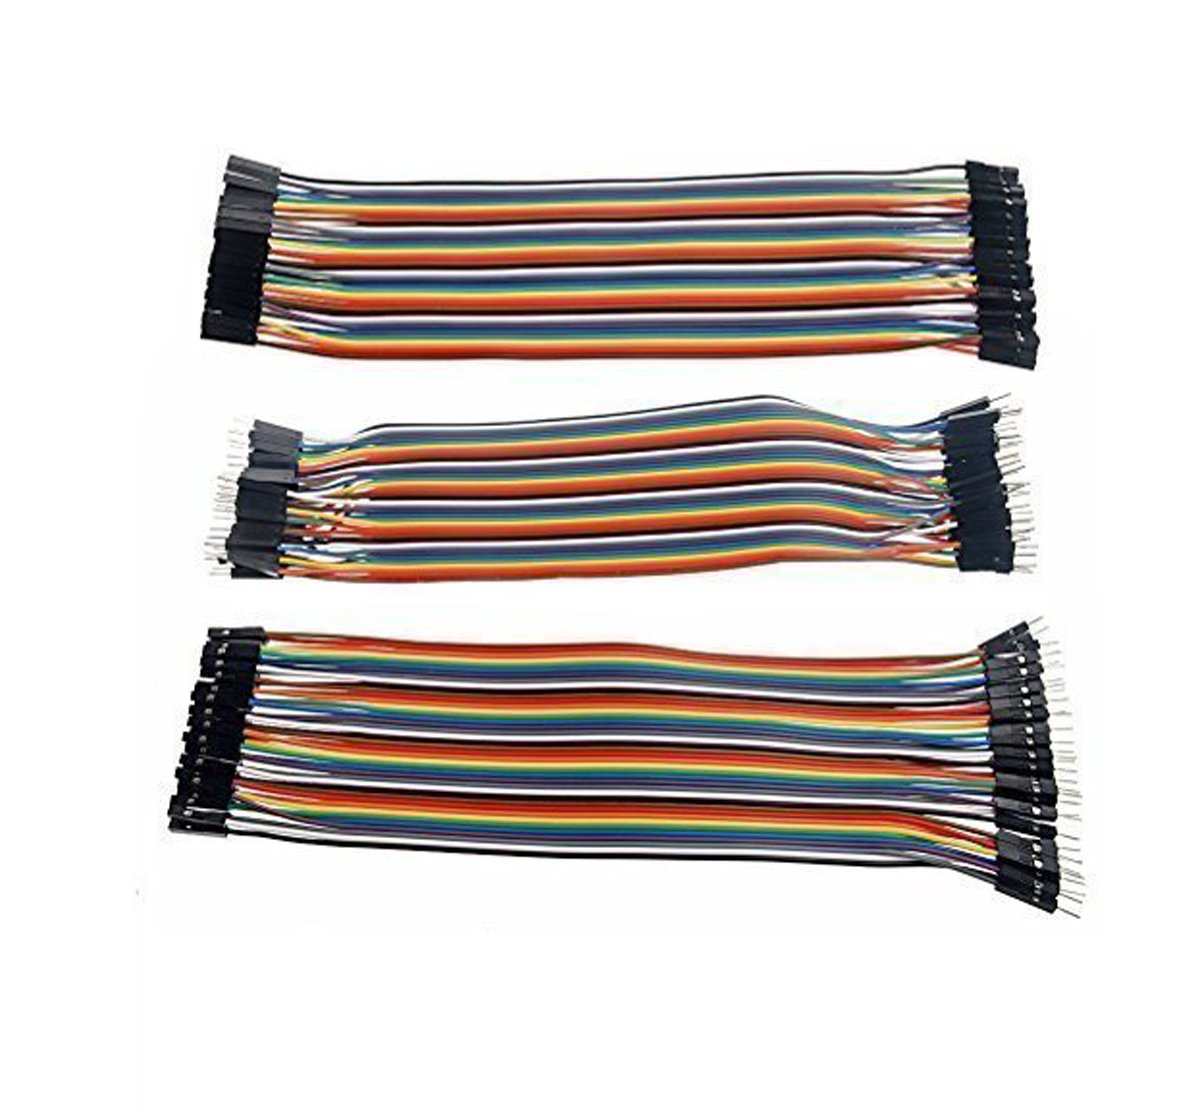 Haobase 120pcs Multicolored 40pin Male to Female, 40pin Male to Male, 40pin Female to Female Breadboard Jumper Wires Ribbon Cables Kit